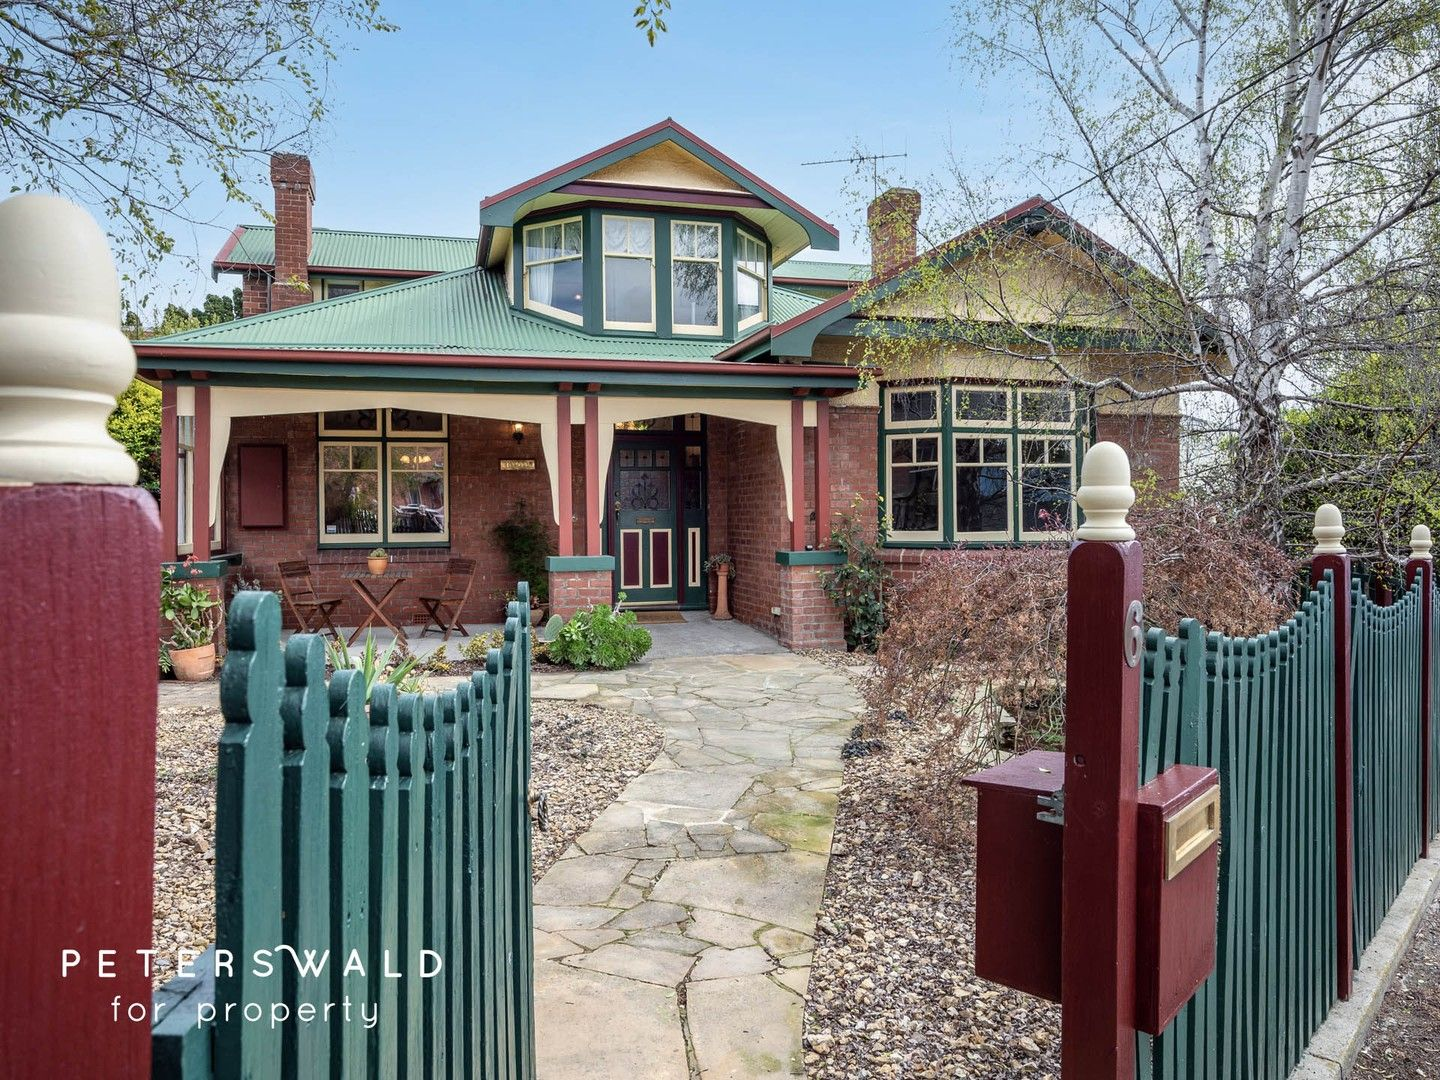 4 bedrooms House in 6 Clare Street NEW TOWN TAS, 7008